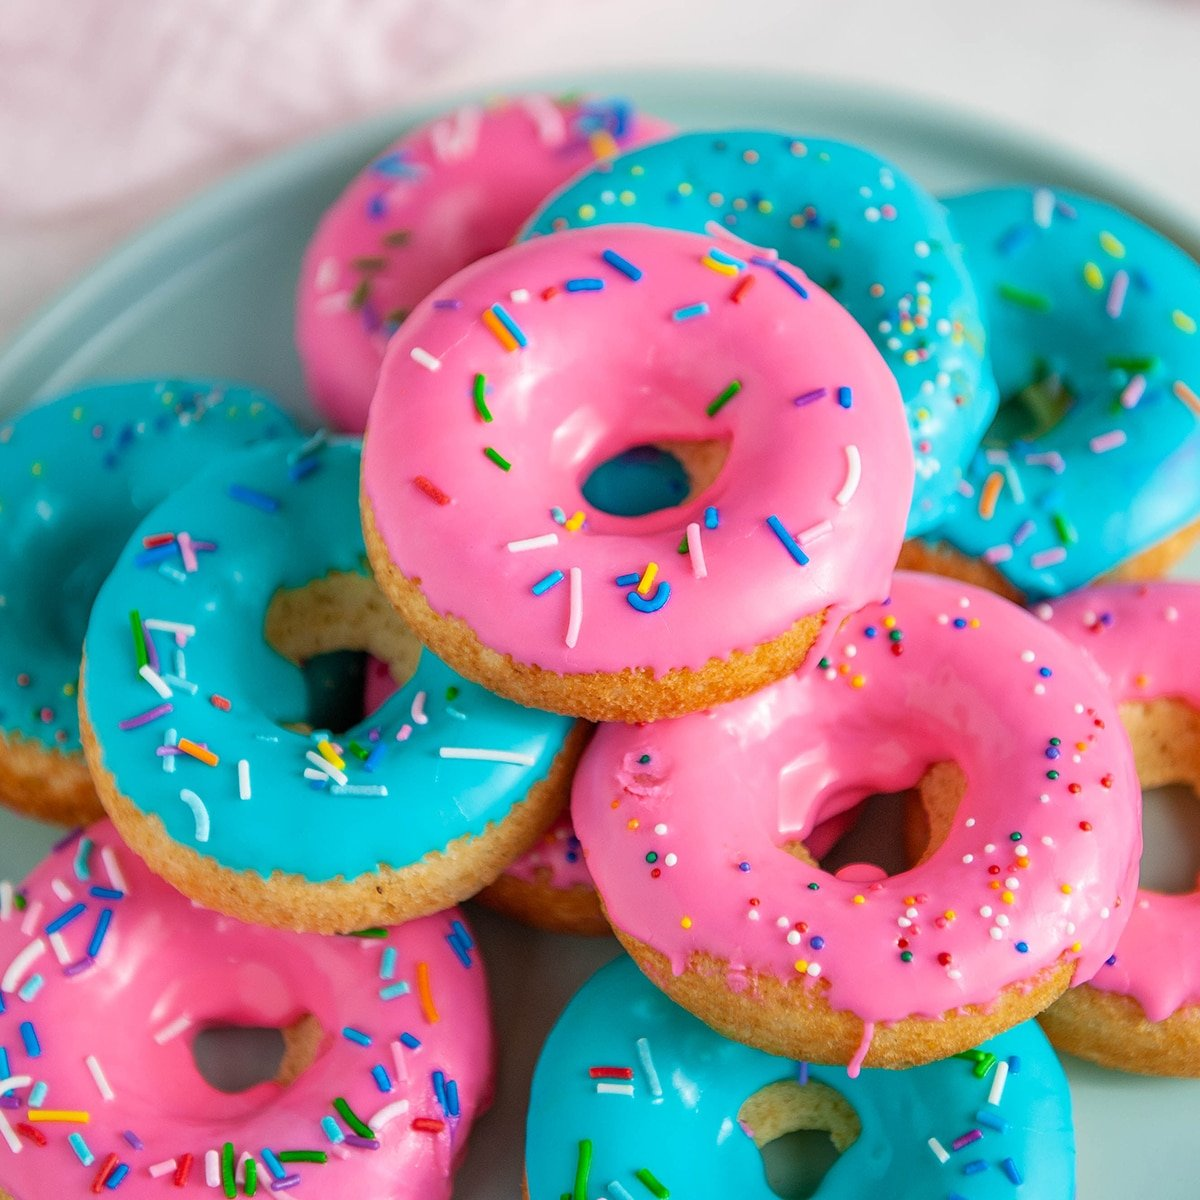 Classic Baked Donut Recipe With Colorful Glaze With Colorful Glaze Sugar Geek Show